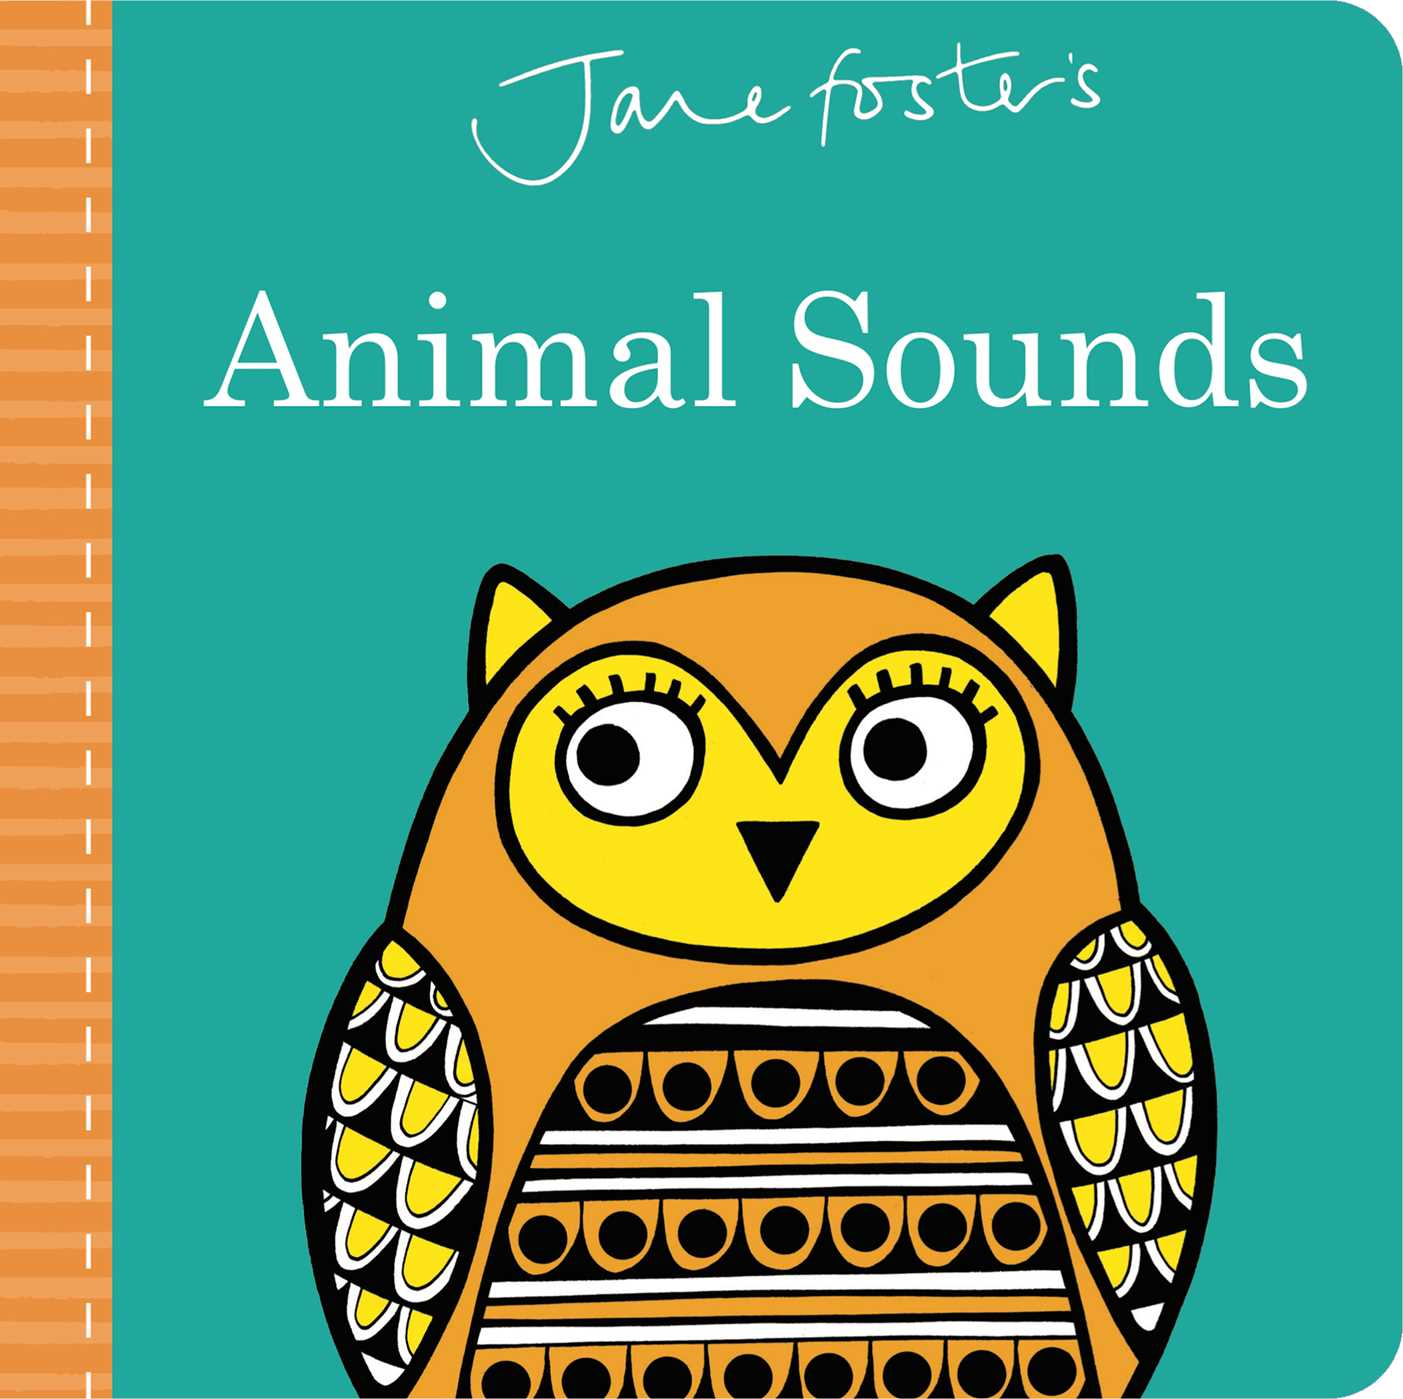 Jane Fosters Animal Sounds (Board Book)